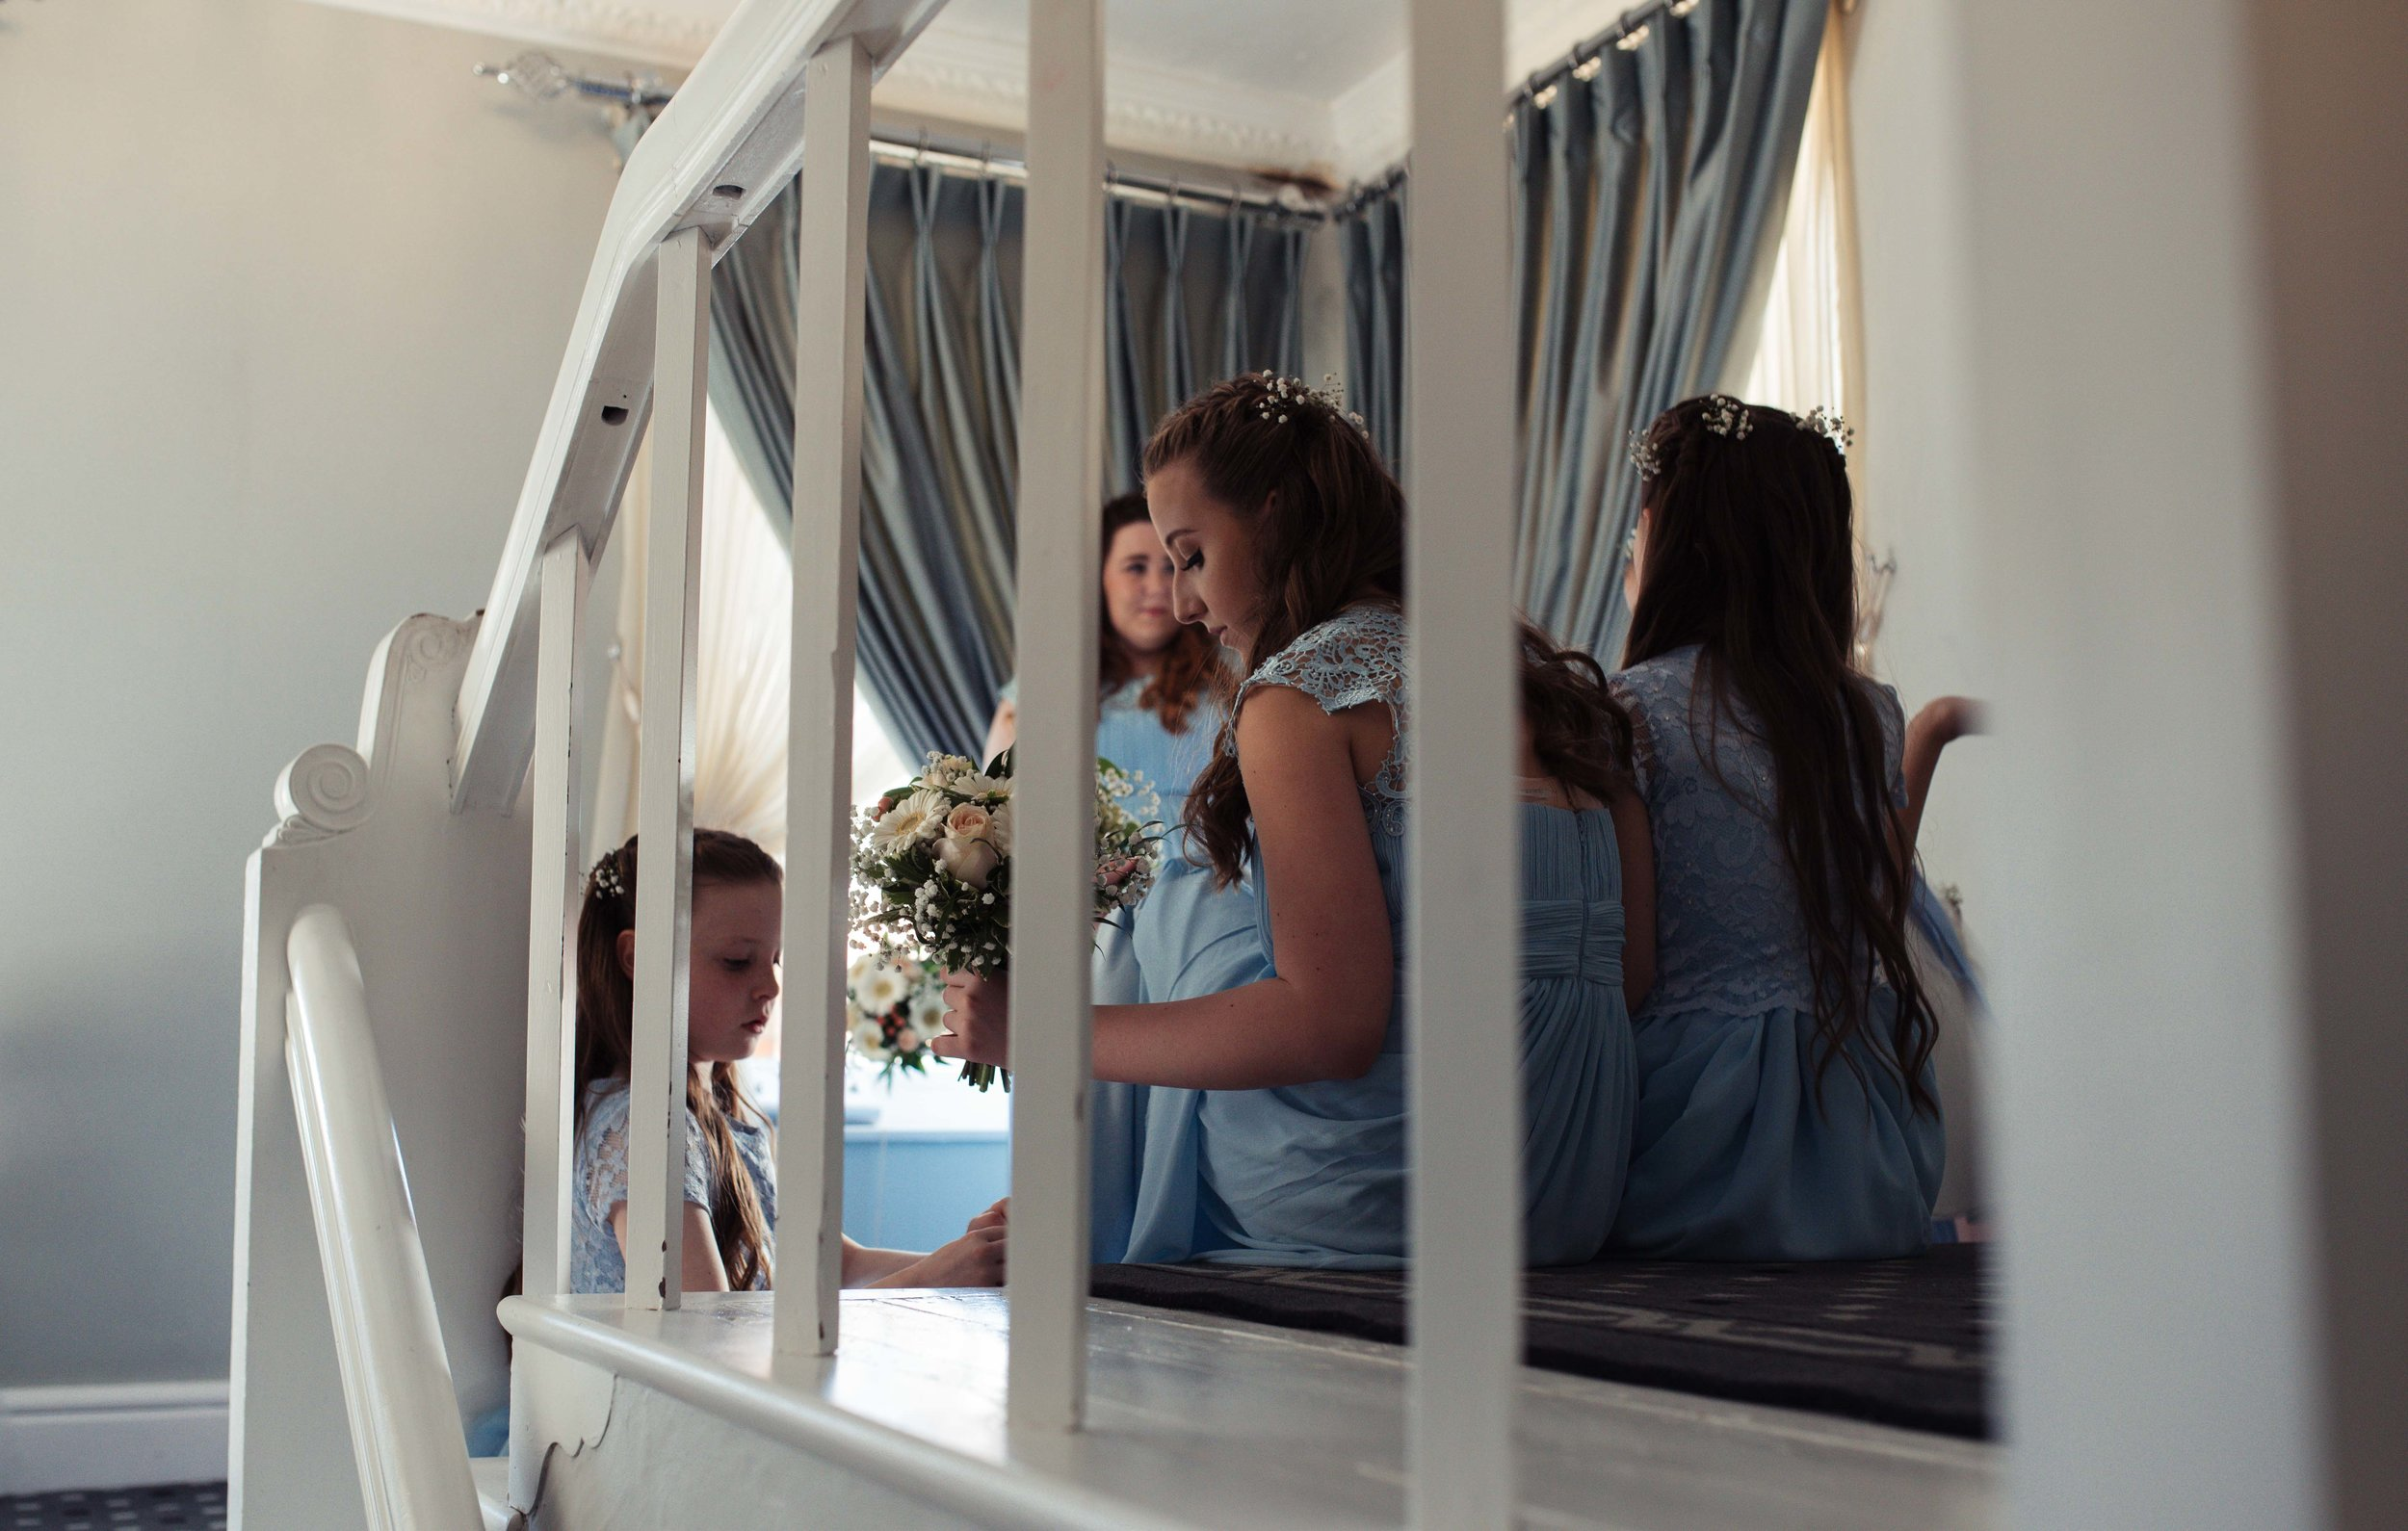 Flower girls and bridesmaids sit on the stairs of the wedding venue and wait for the bride to appear.